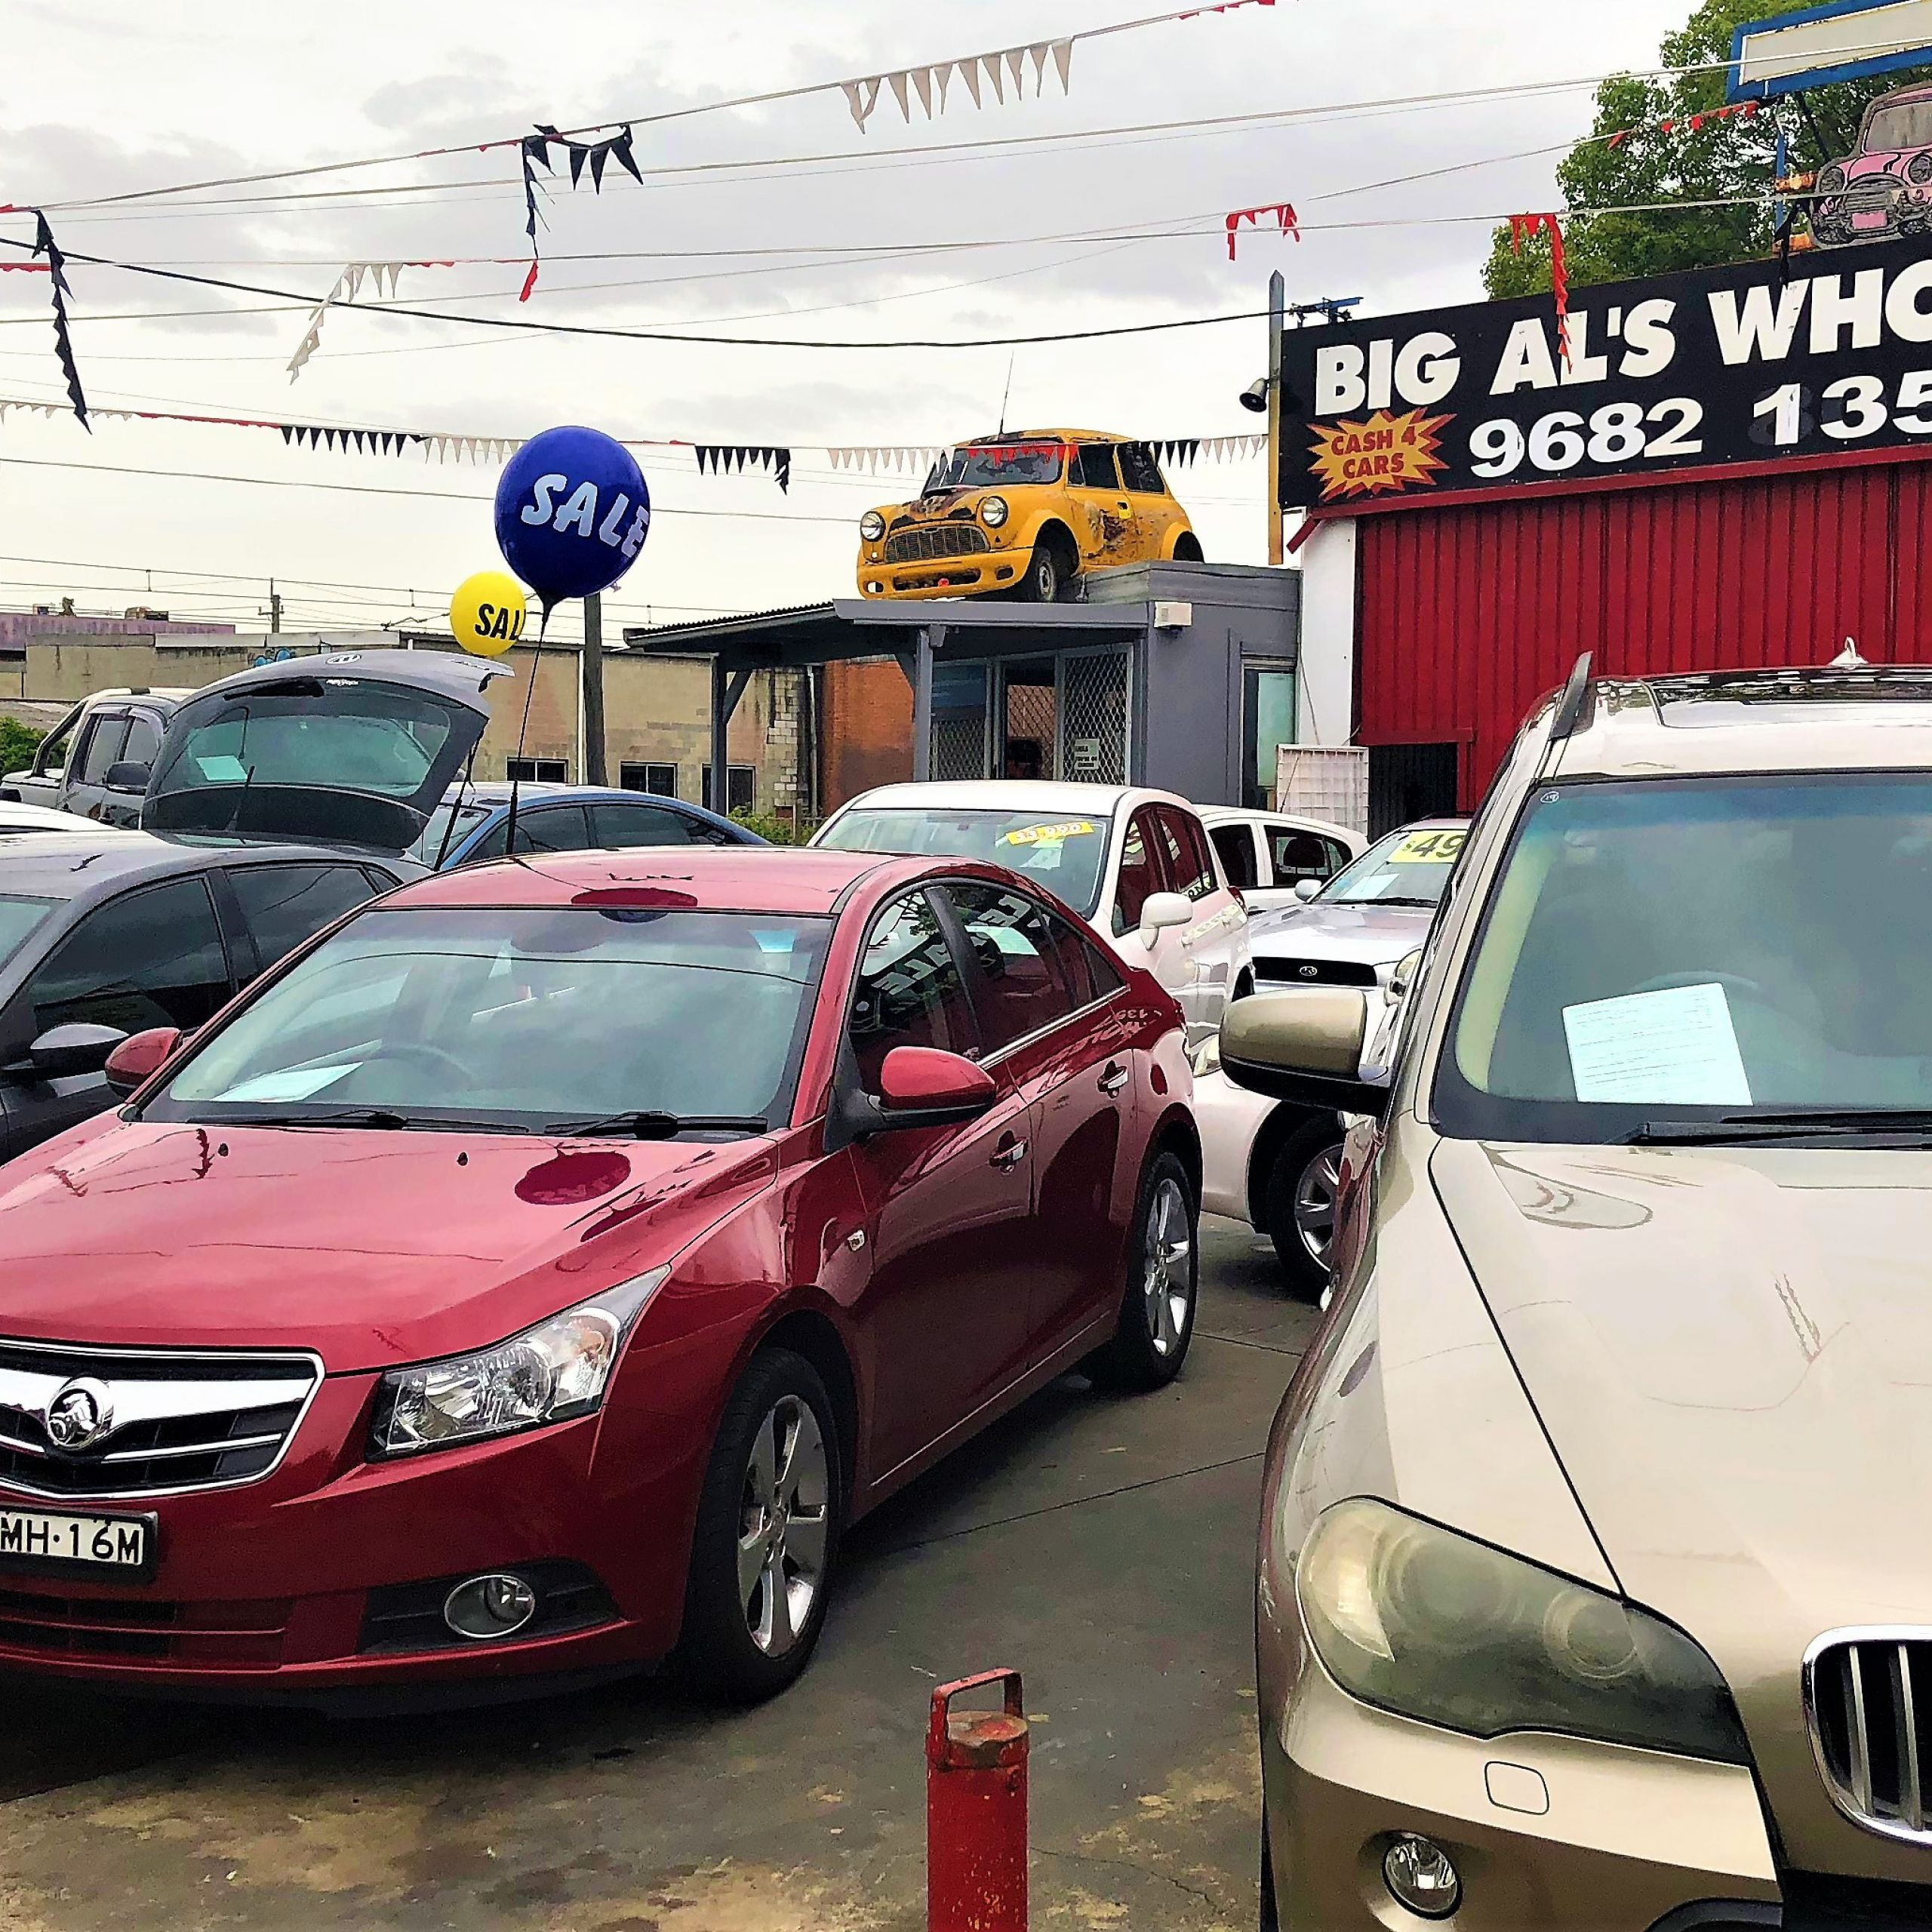 Awesome Repossessed Cars for Sale Near Me Awesome Awesome wholesale Cars for Sale Near Me